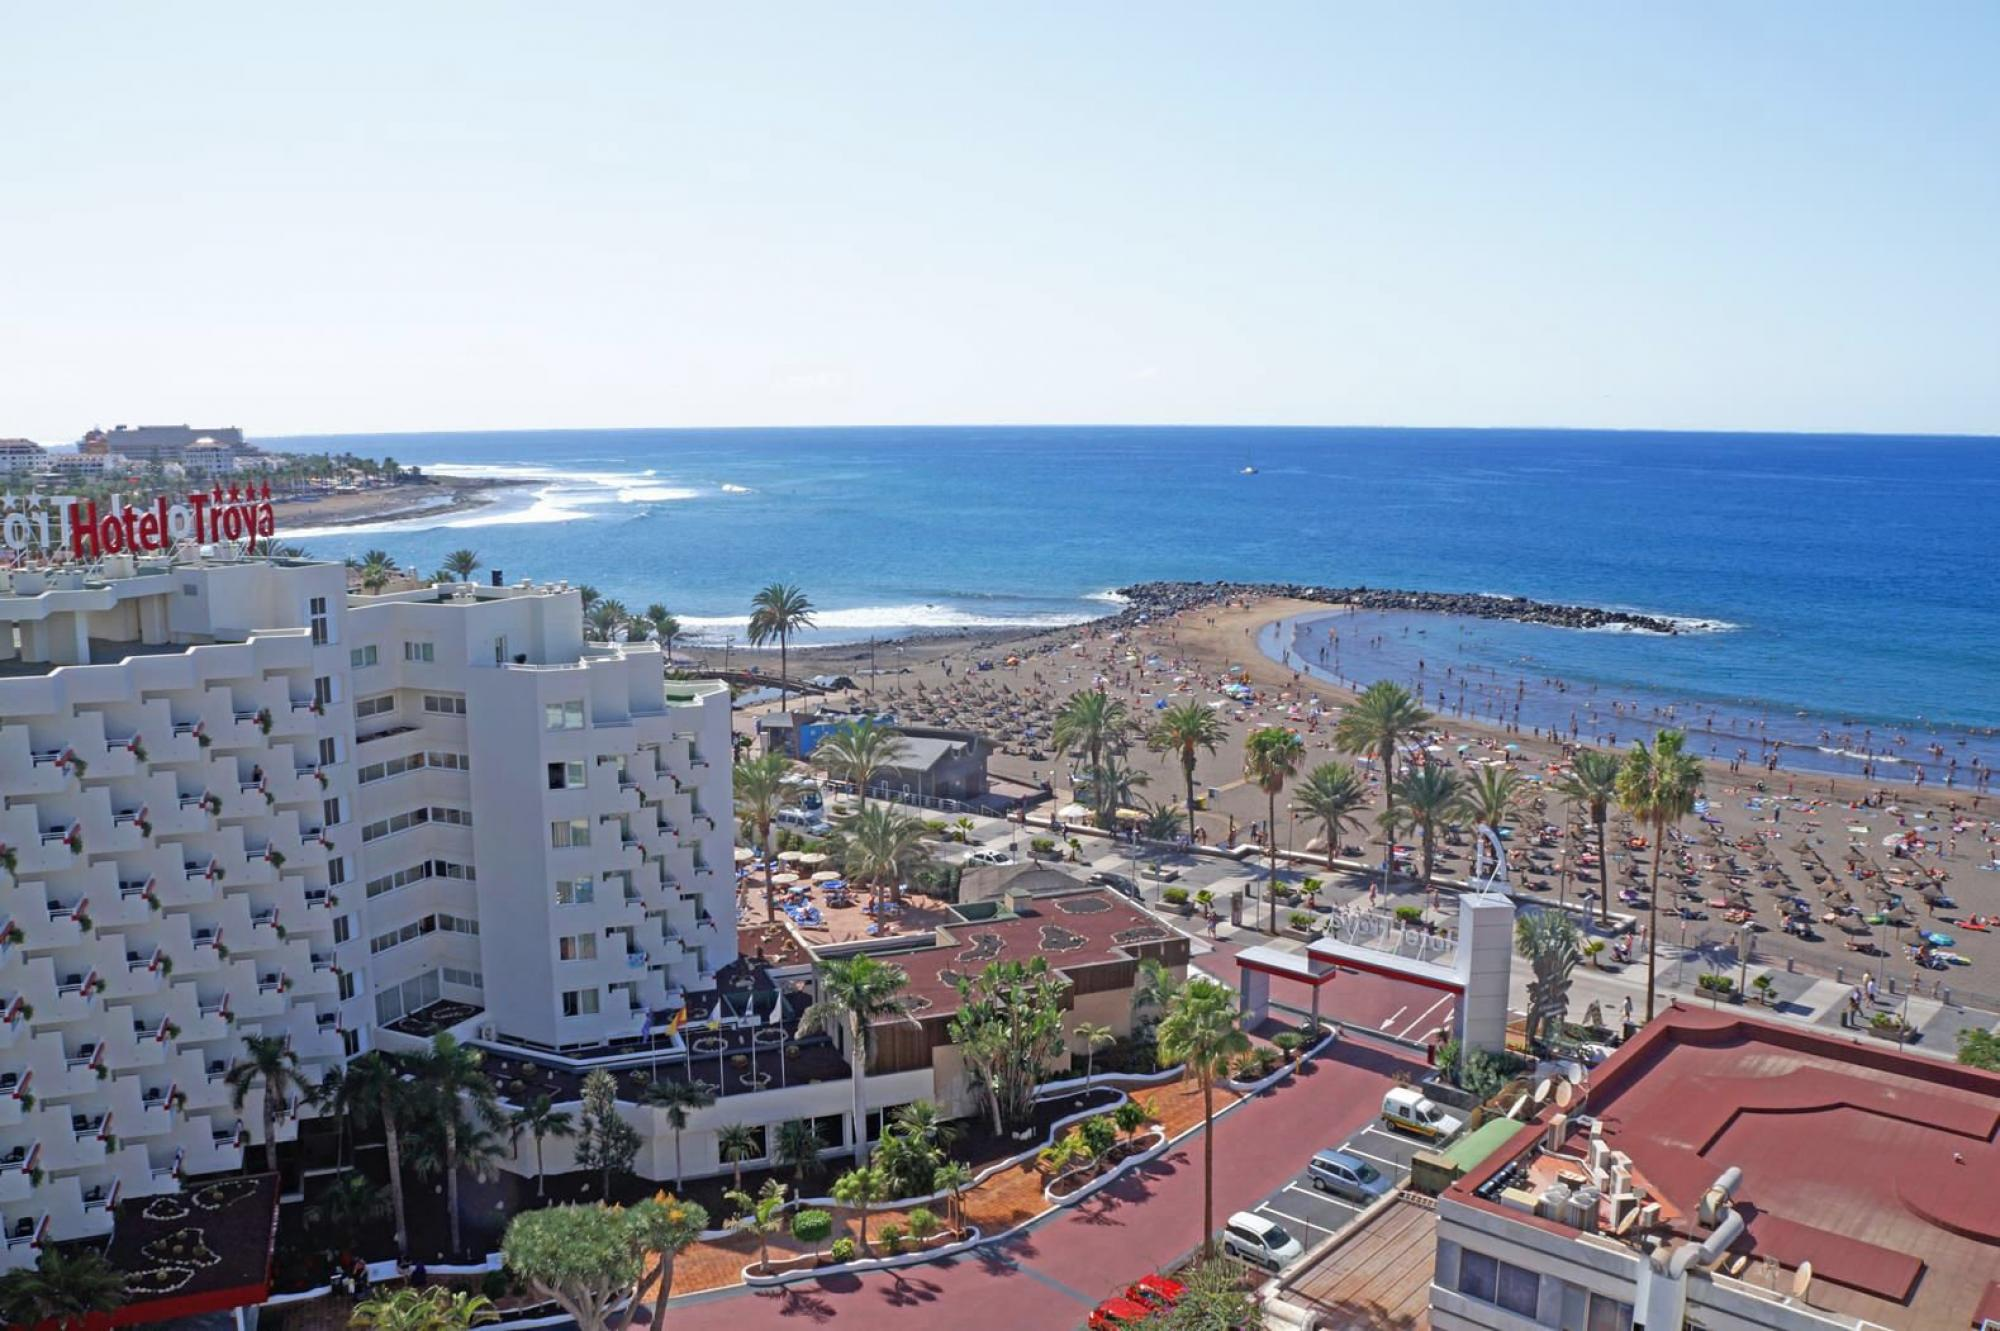 View Hotel Troya's picturesque sea view within magnificent Tenerife.